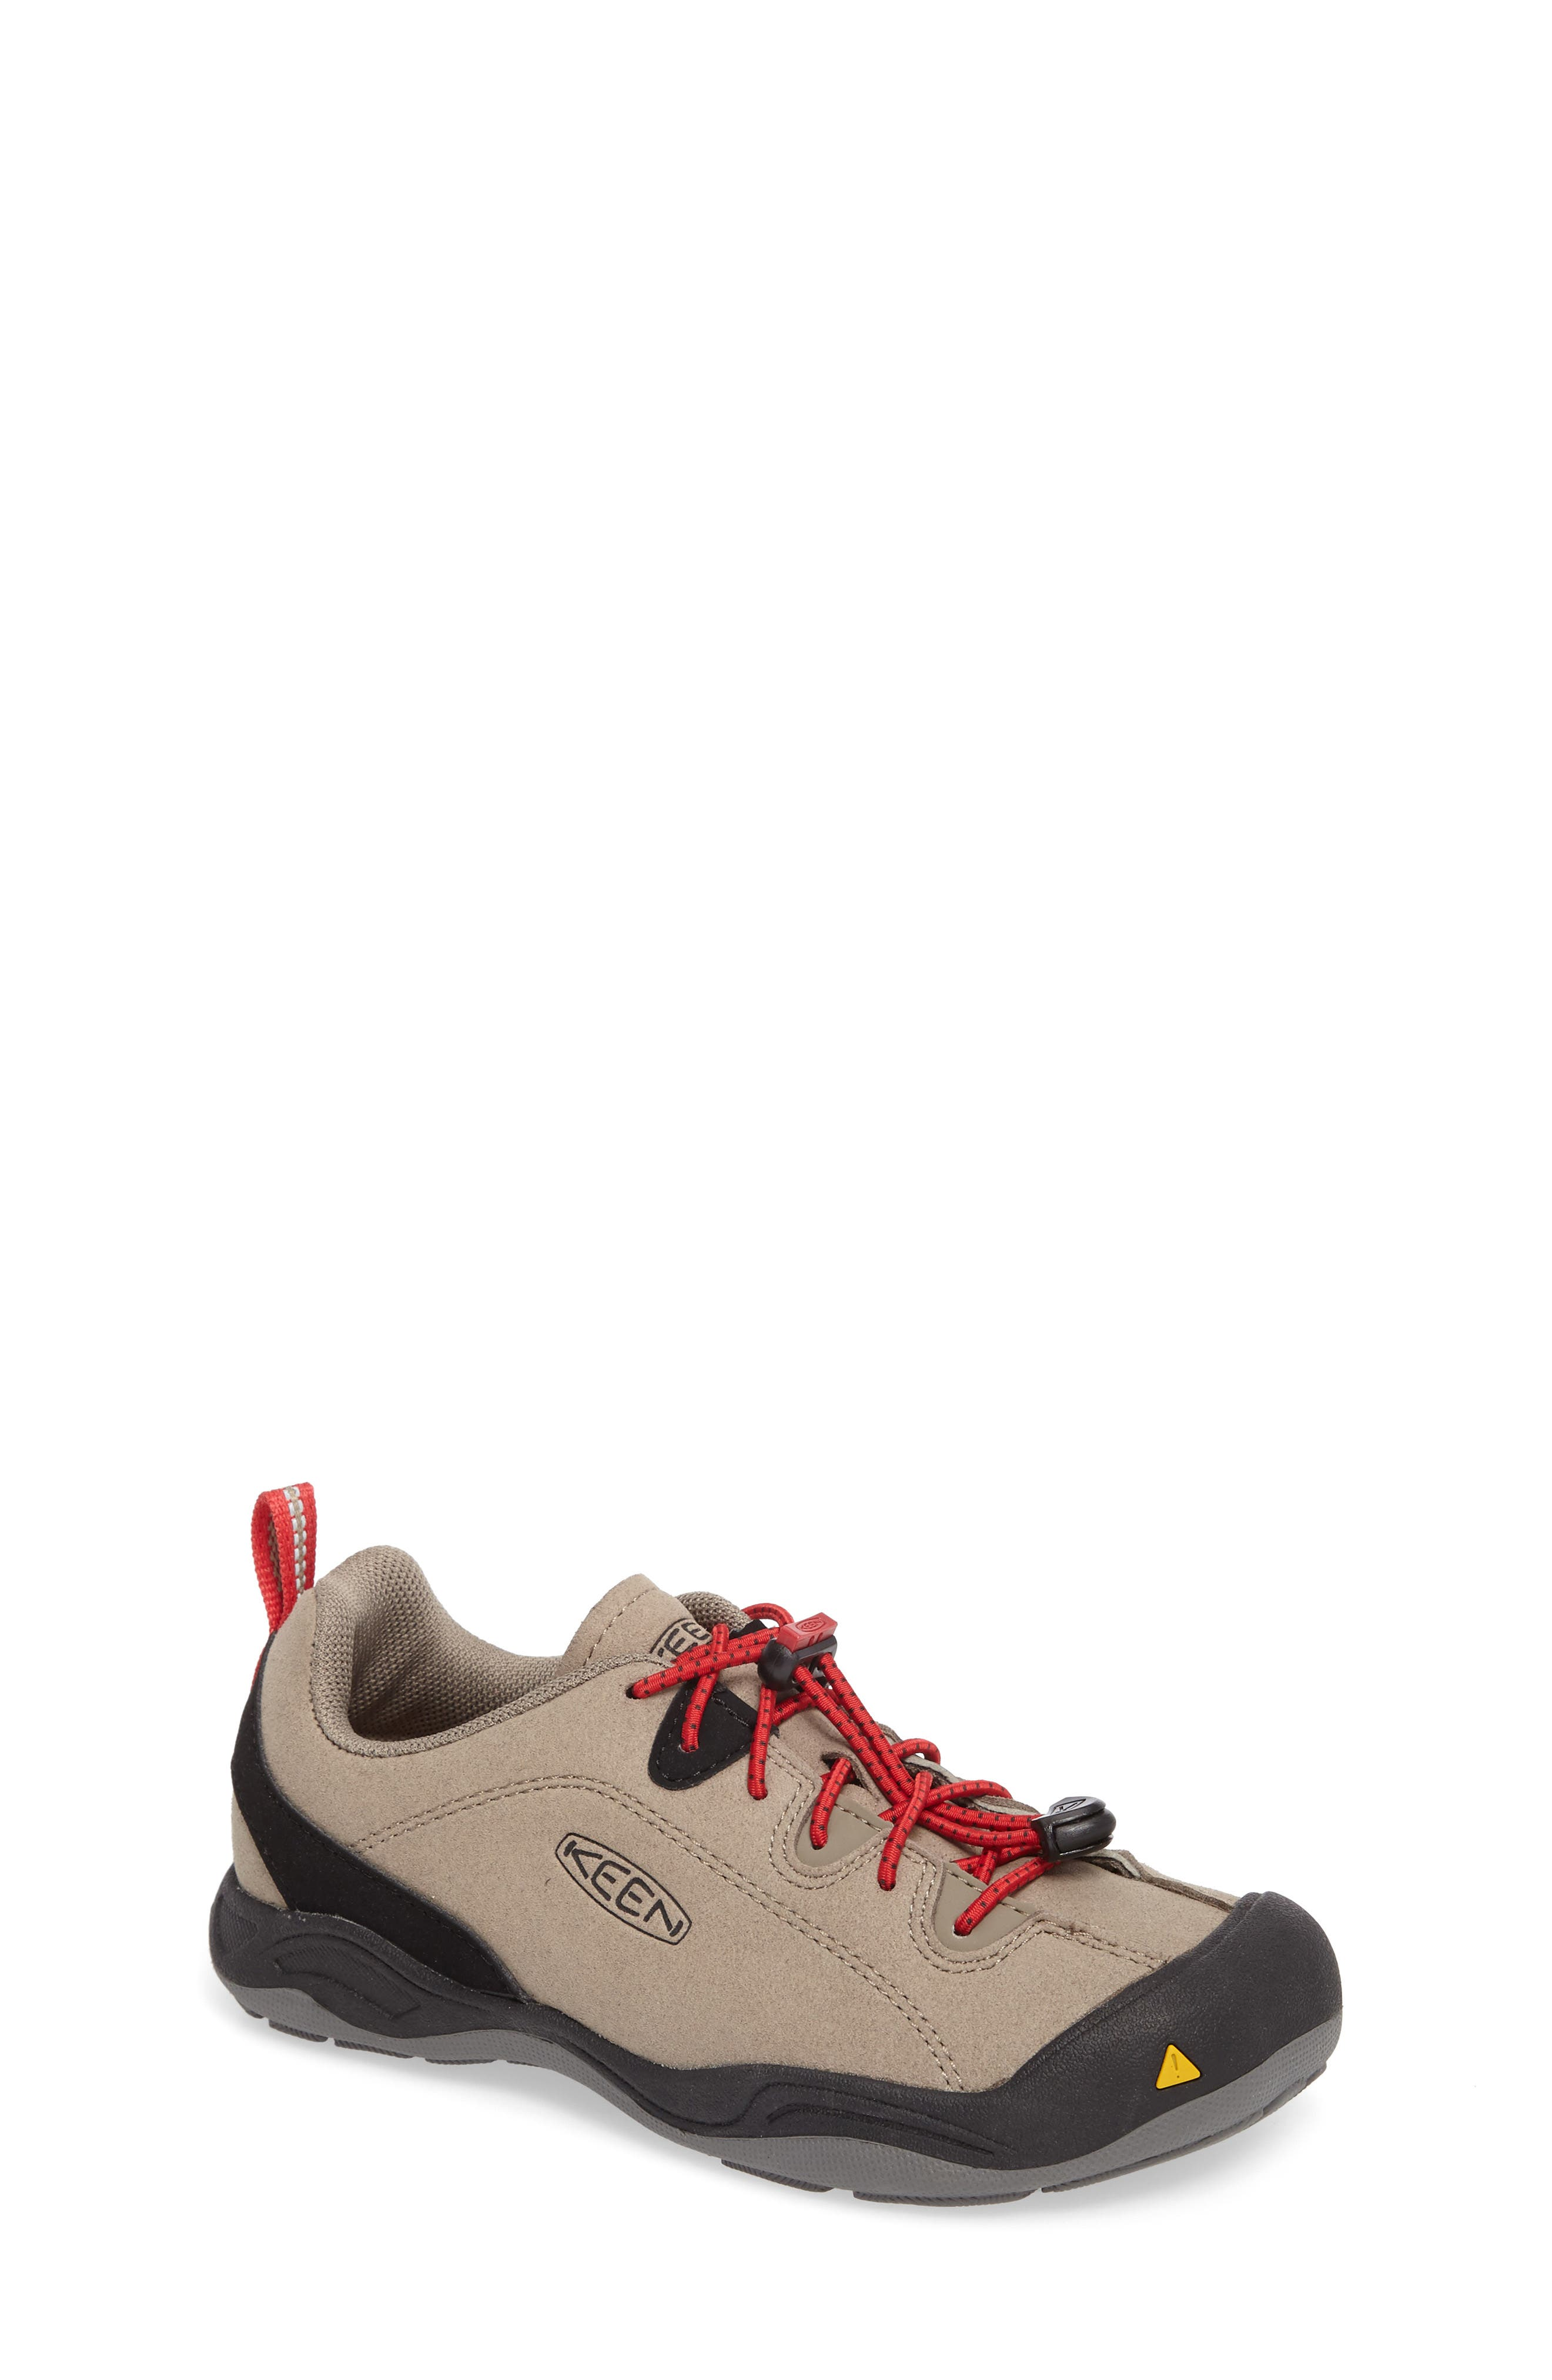 Main Image - Keen Jasper Sneaker (Toddler, Little Kid & Big Kid)